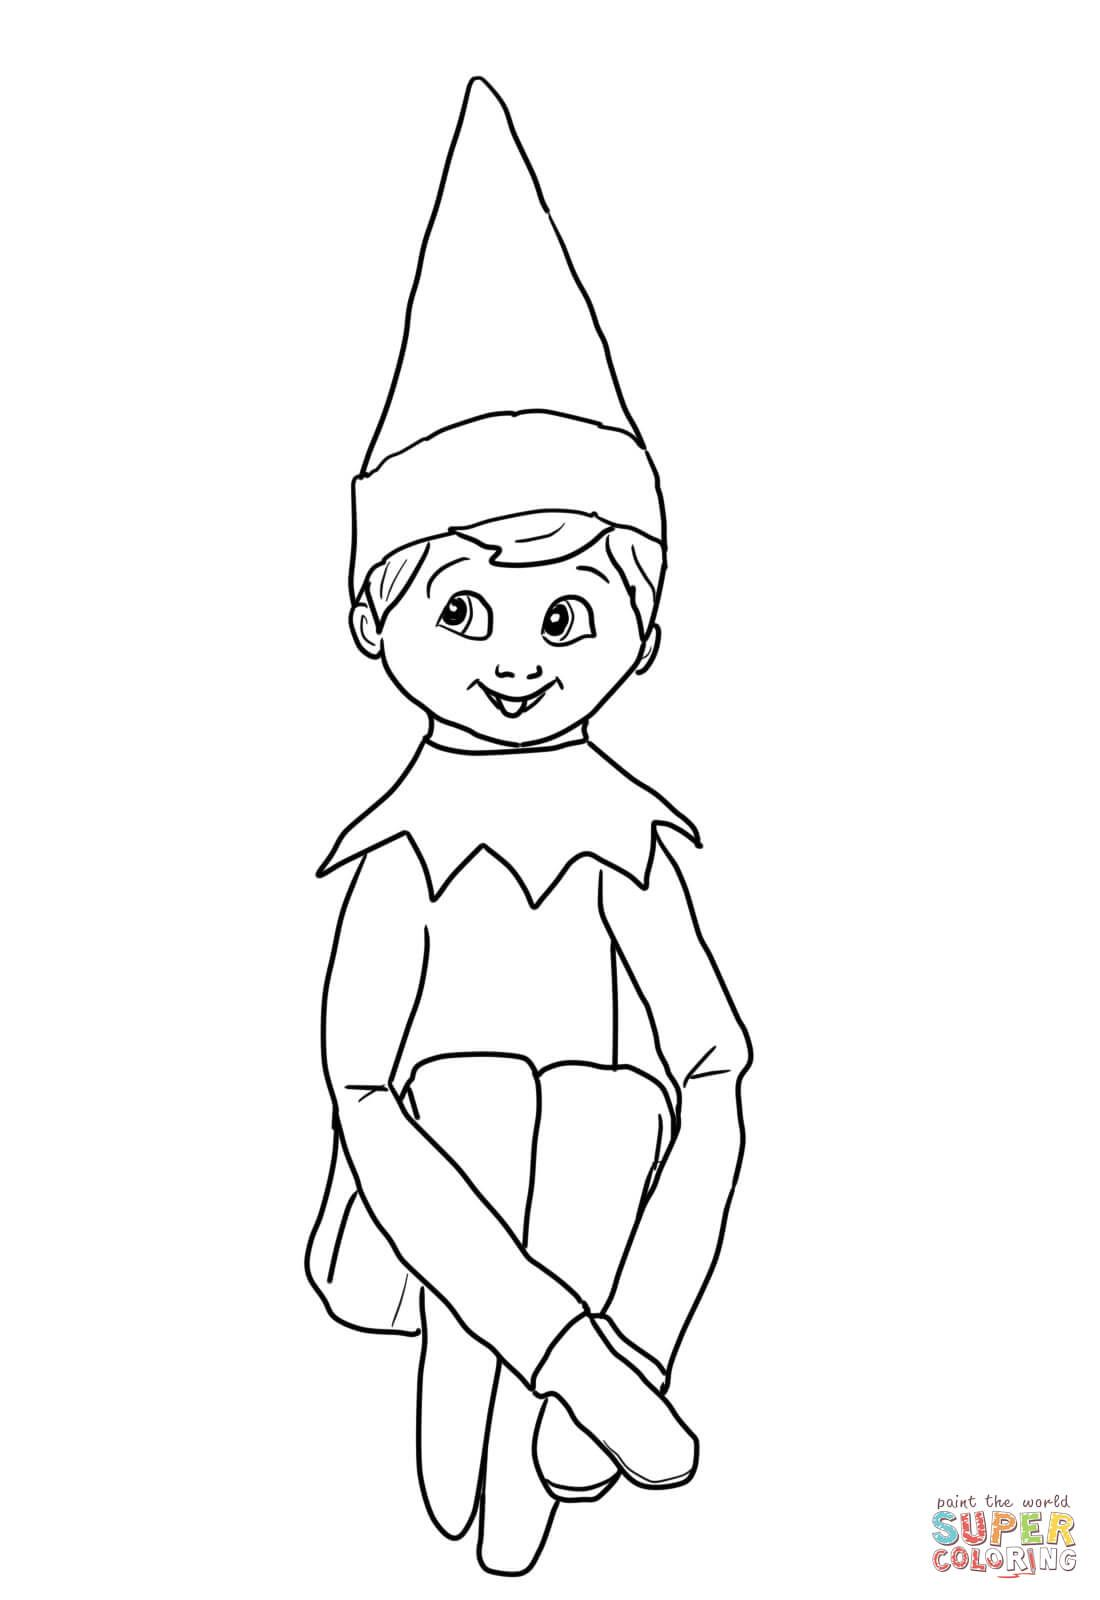 These Fun Christmas Santa Claus Coloring Pages With Free Printable Elves Also Trees